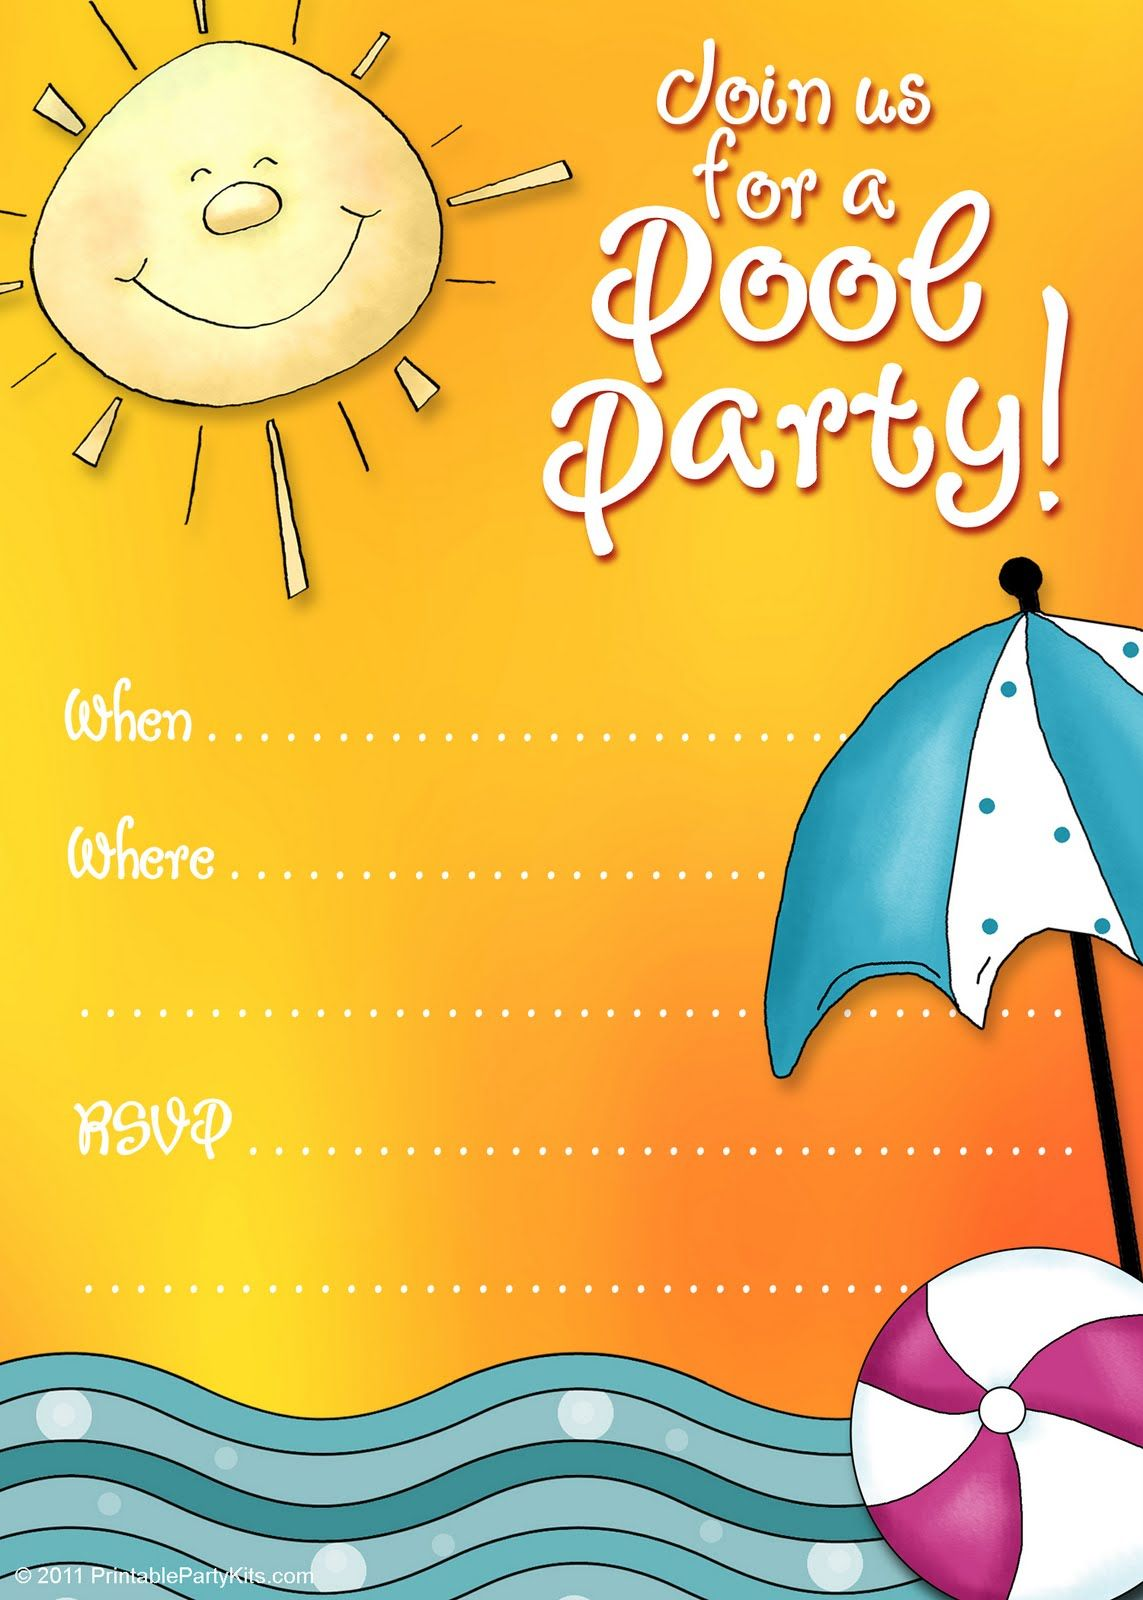 Free Printable Party Invitations: Free Printable Pool Party ...